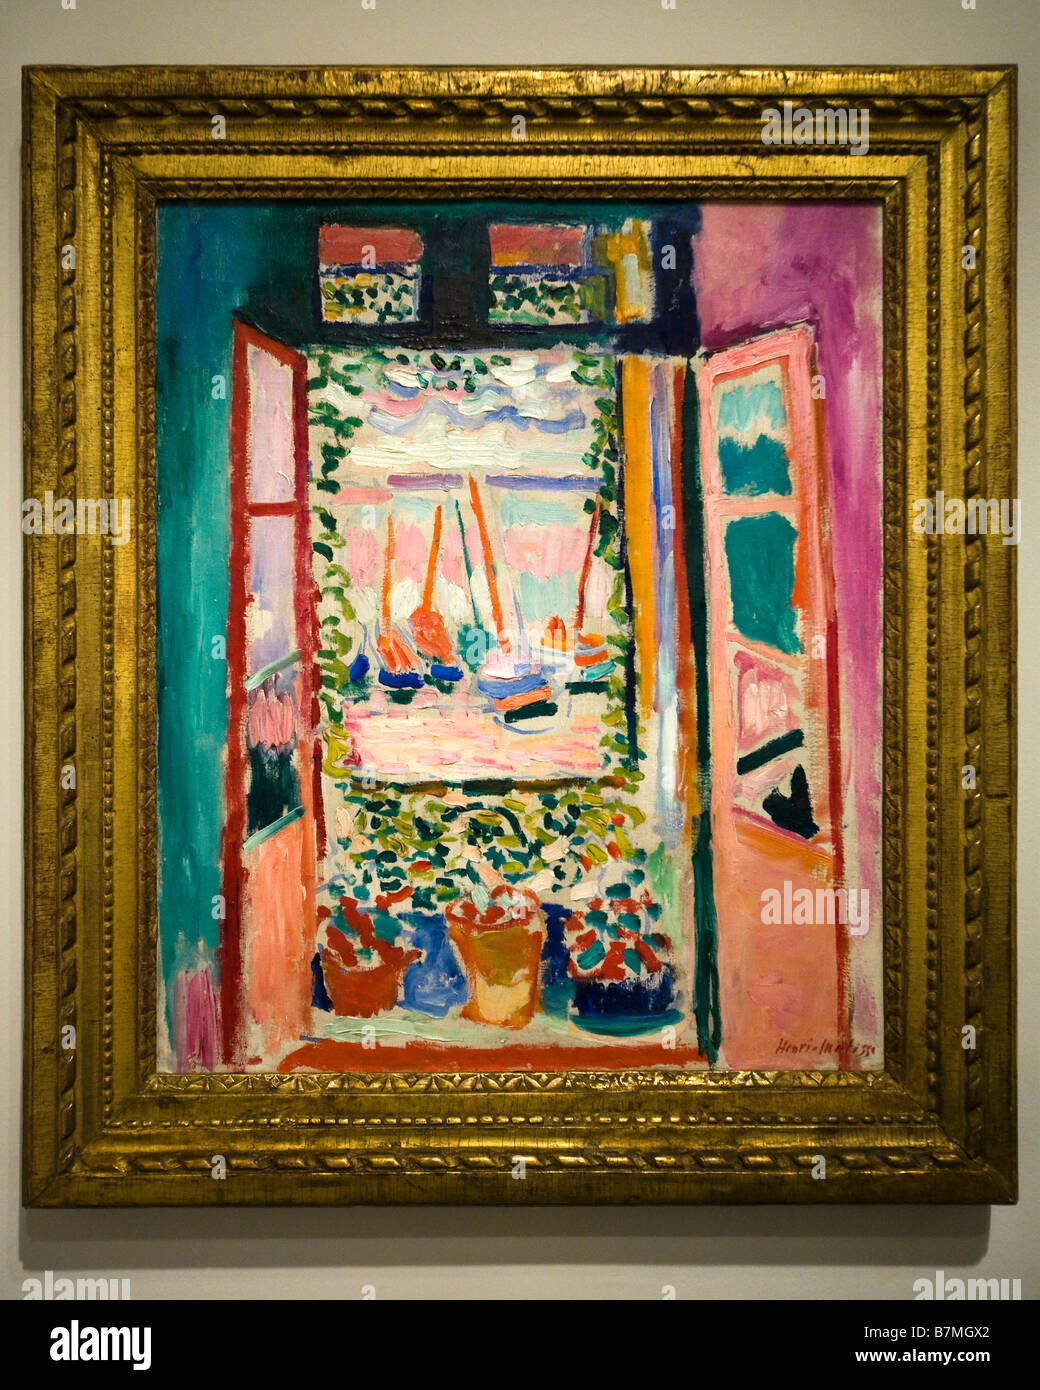 Open window collioure henri matisse 1905 the for Matisse fenetre ouverte collioure